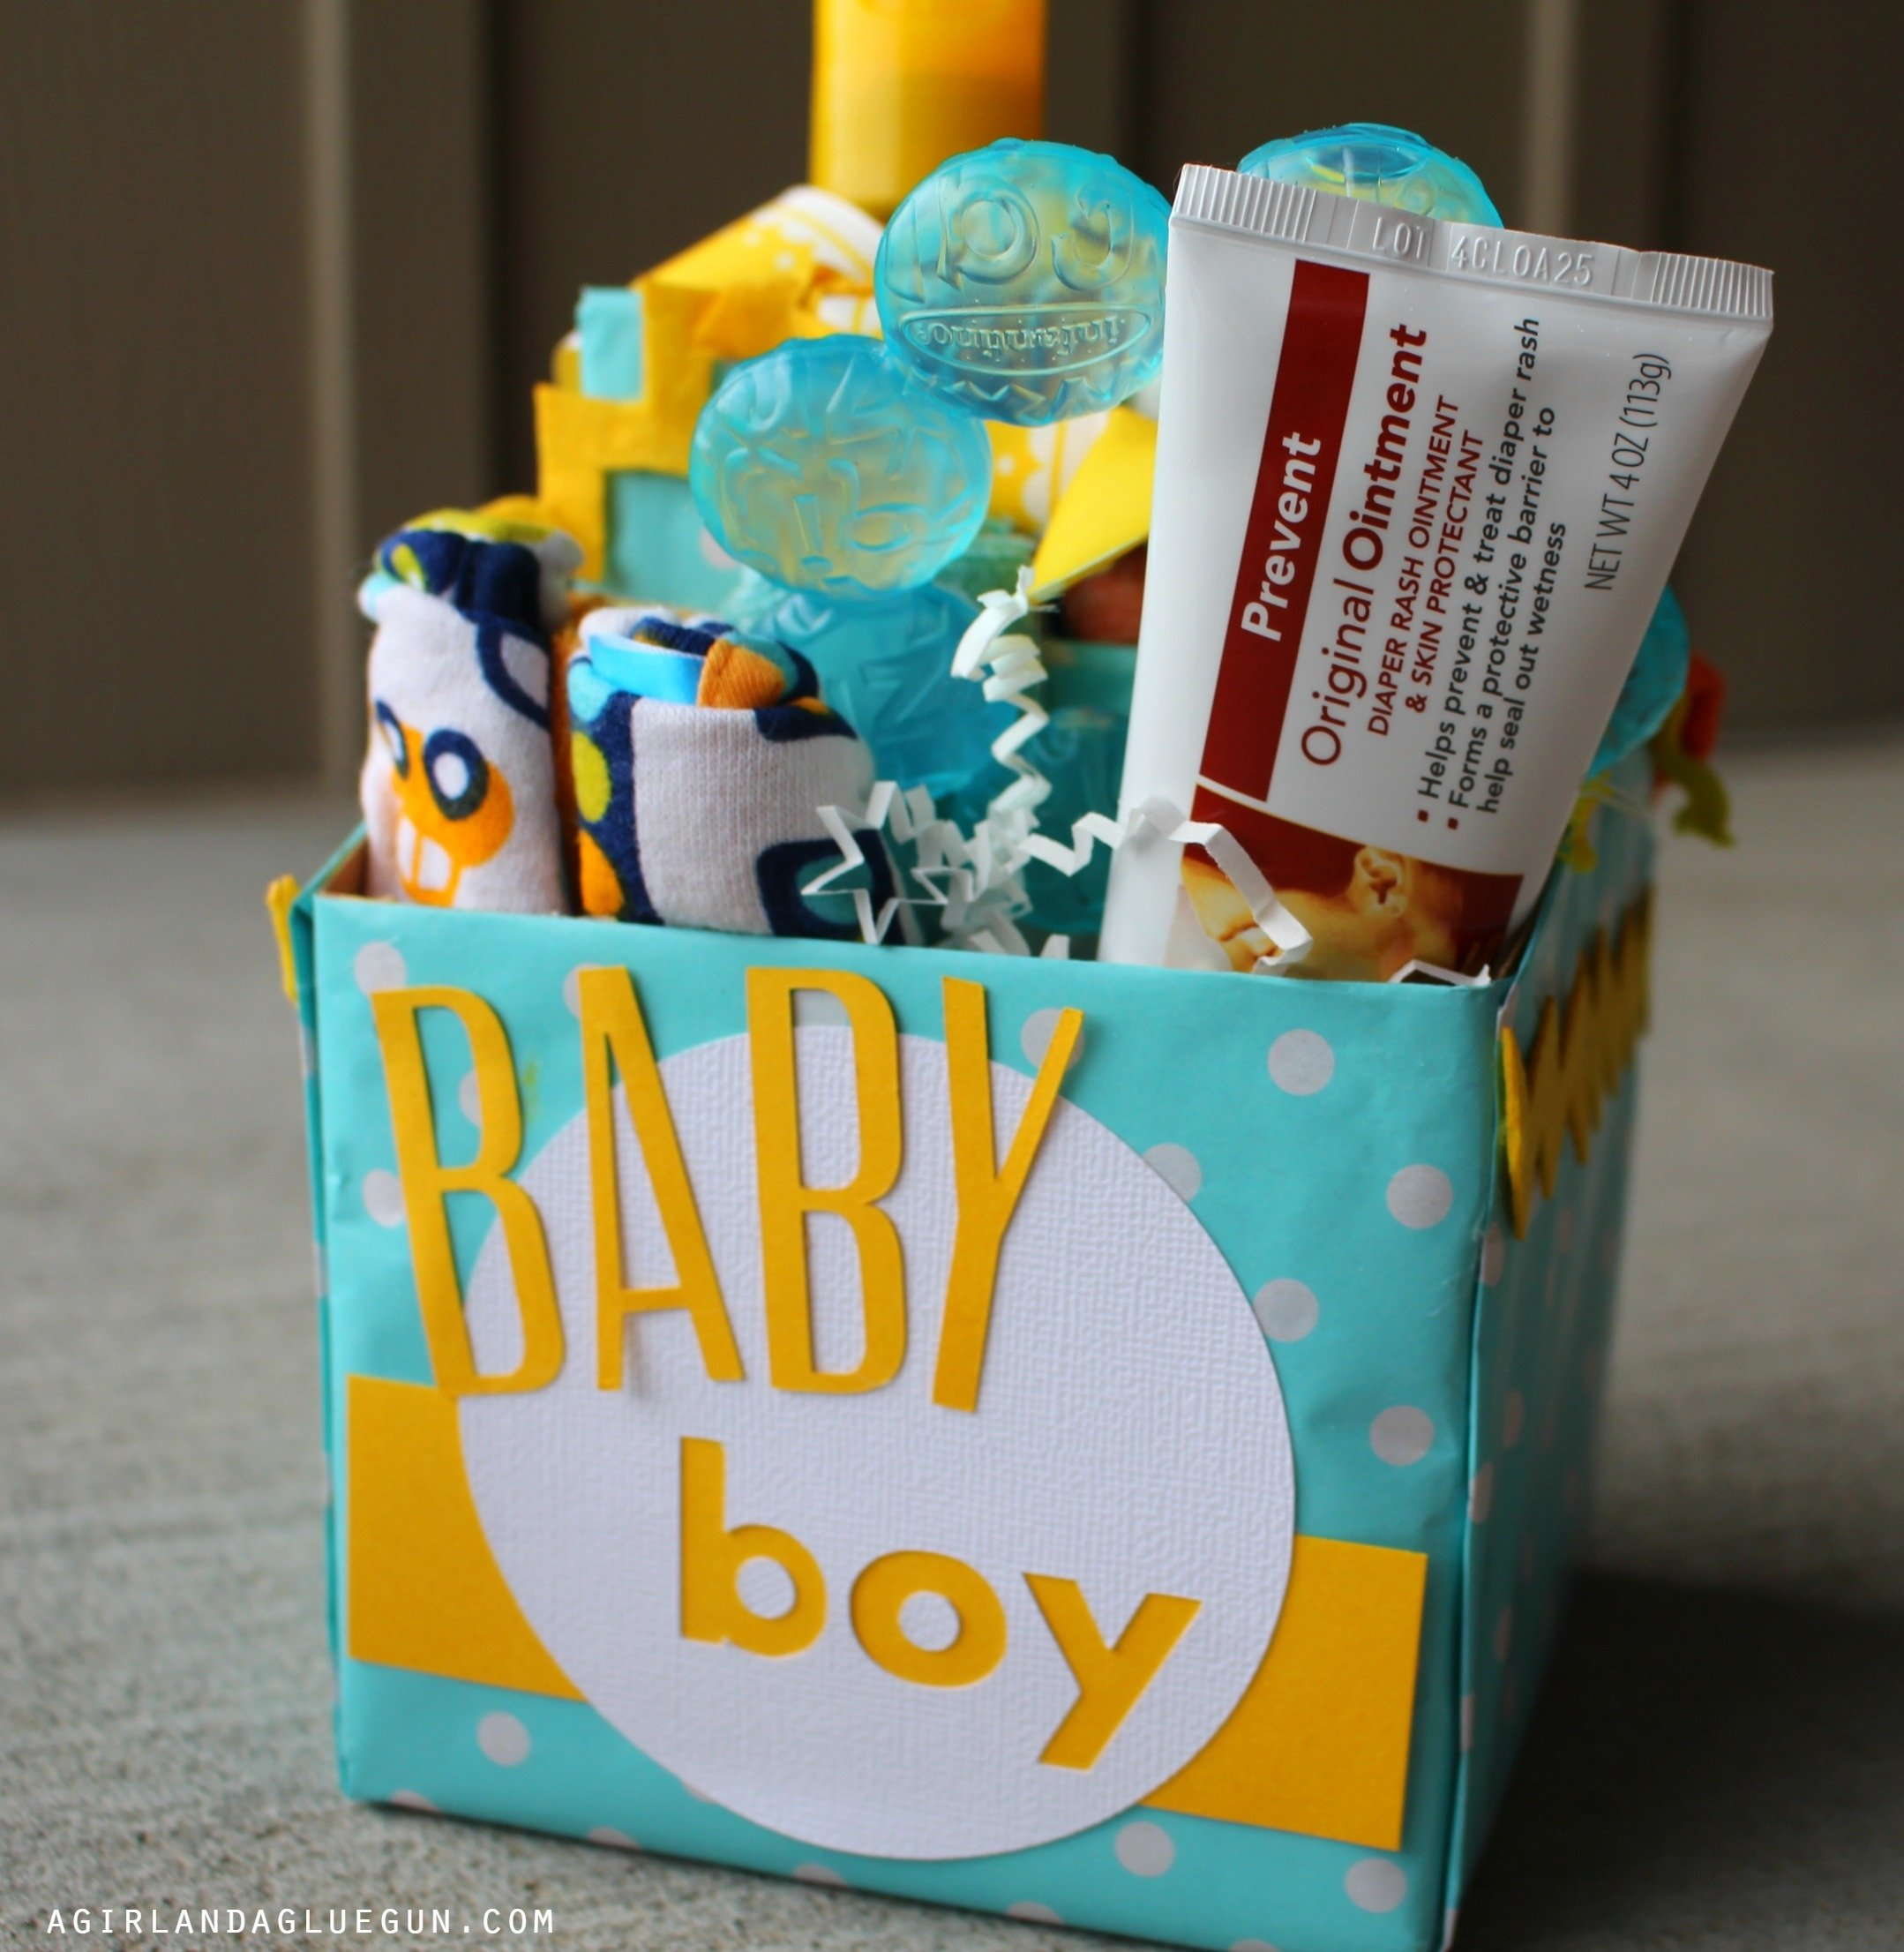 10 Fabulous Ideas For Baby Shower Gifts maxresdefault sensational baby shower gifts for boy ideas gift twins 1